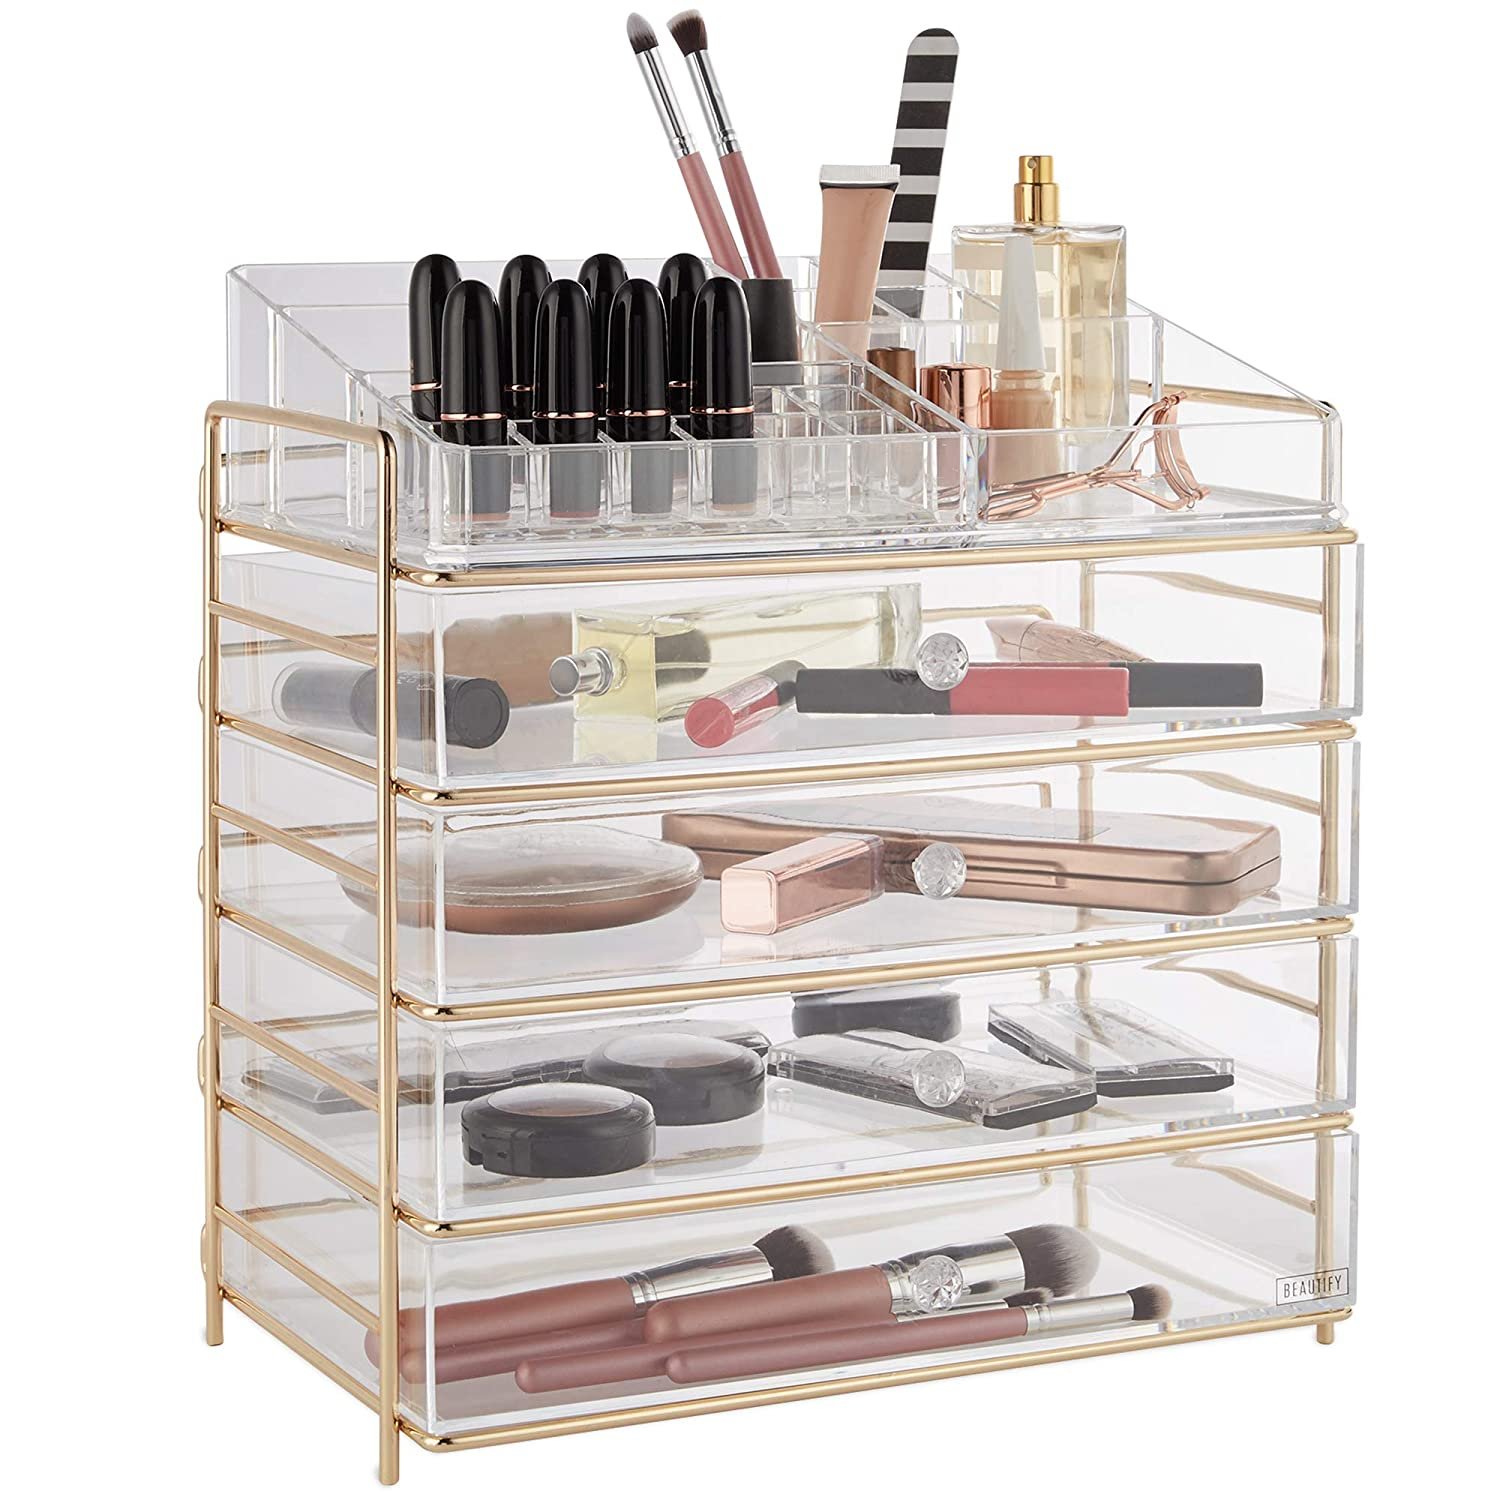 Beautify Large 5 Tier Clear Acrylic Cosmetic Makeup Storage Cube Organizer with 4 Drawers, Upper Compartment with Champagne Gold Frame - H14.4 x L13.5 x ...